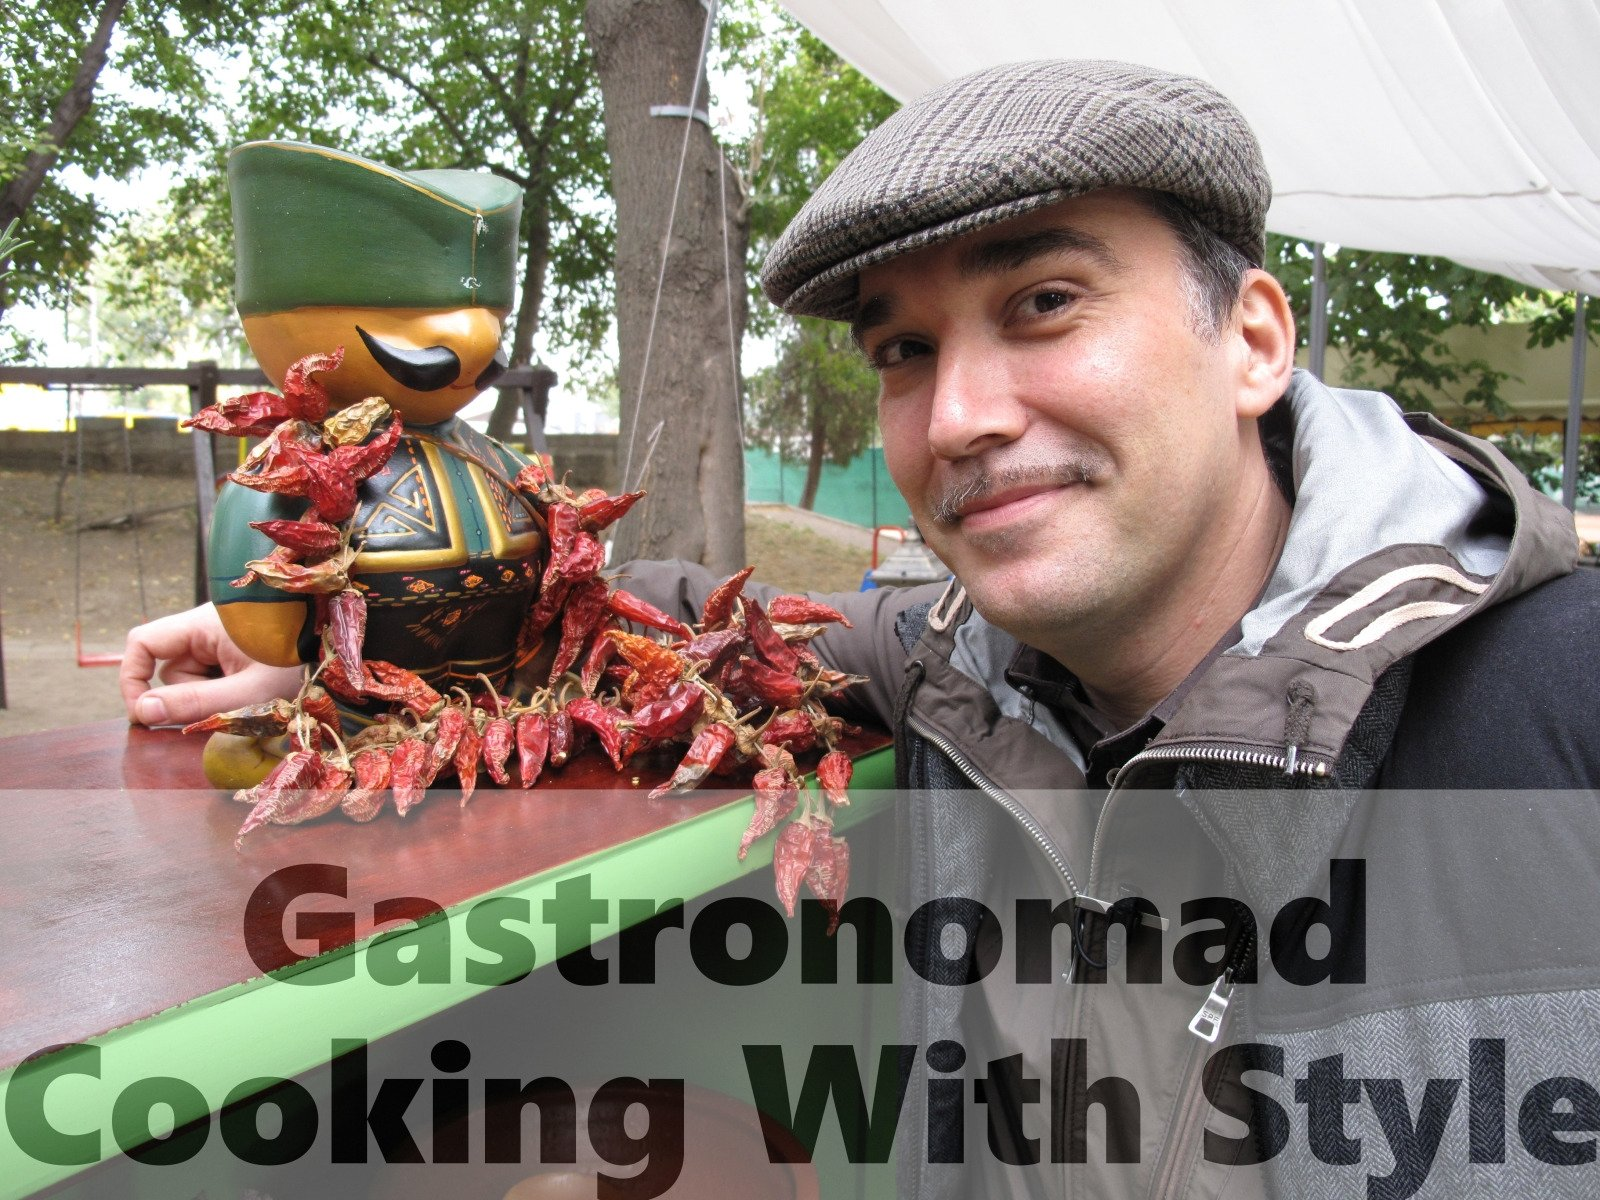 Gastronomad: Cooking With Style - Season 1